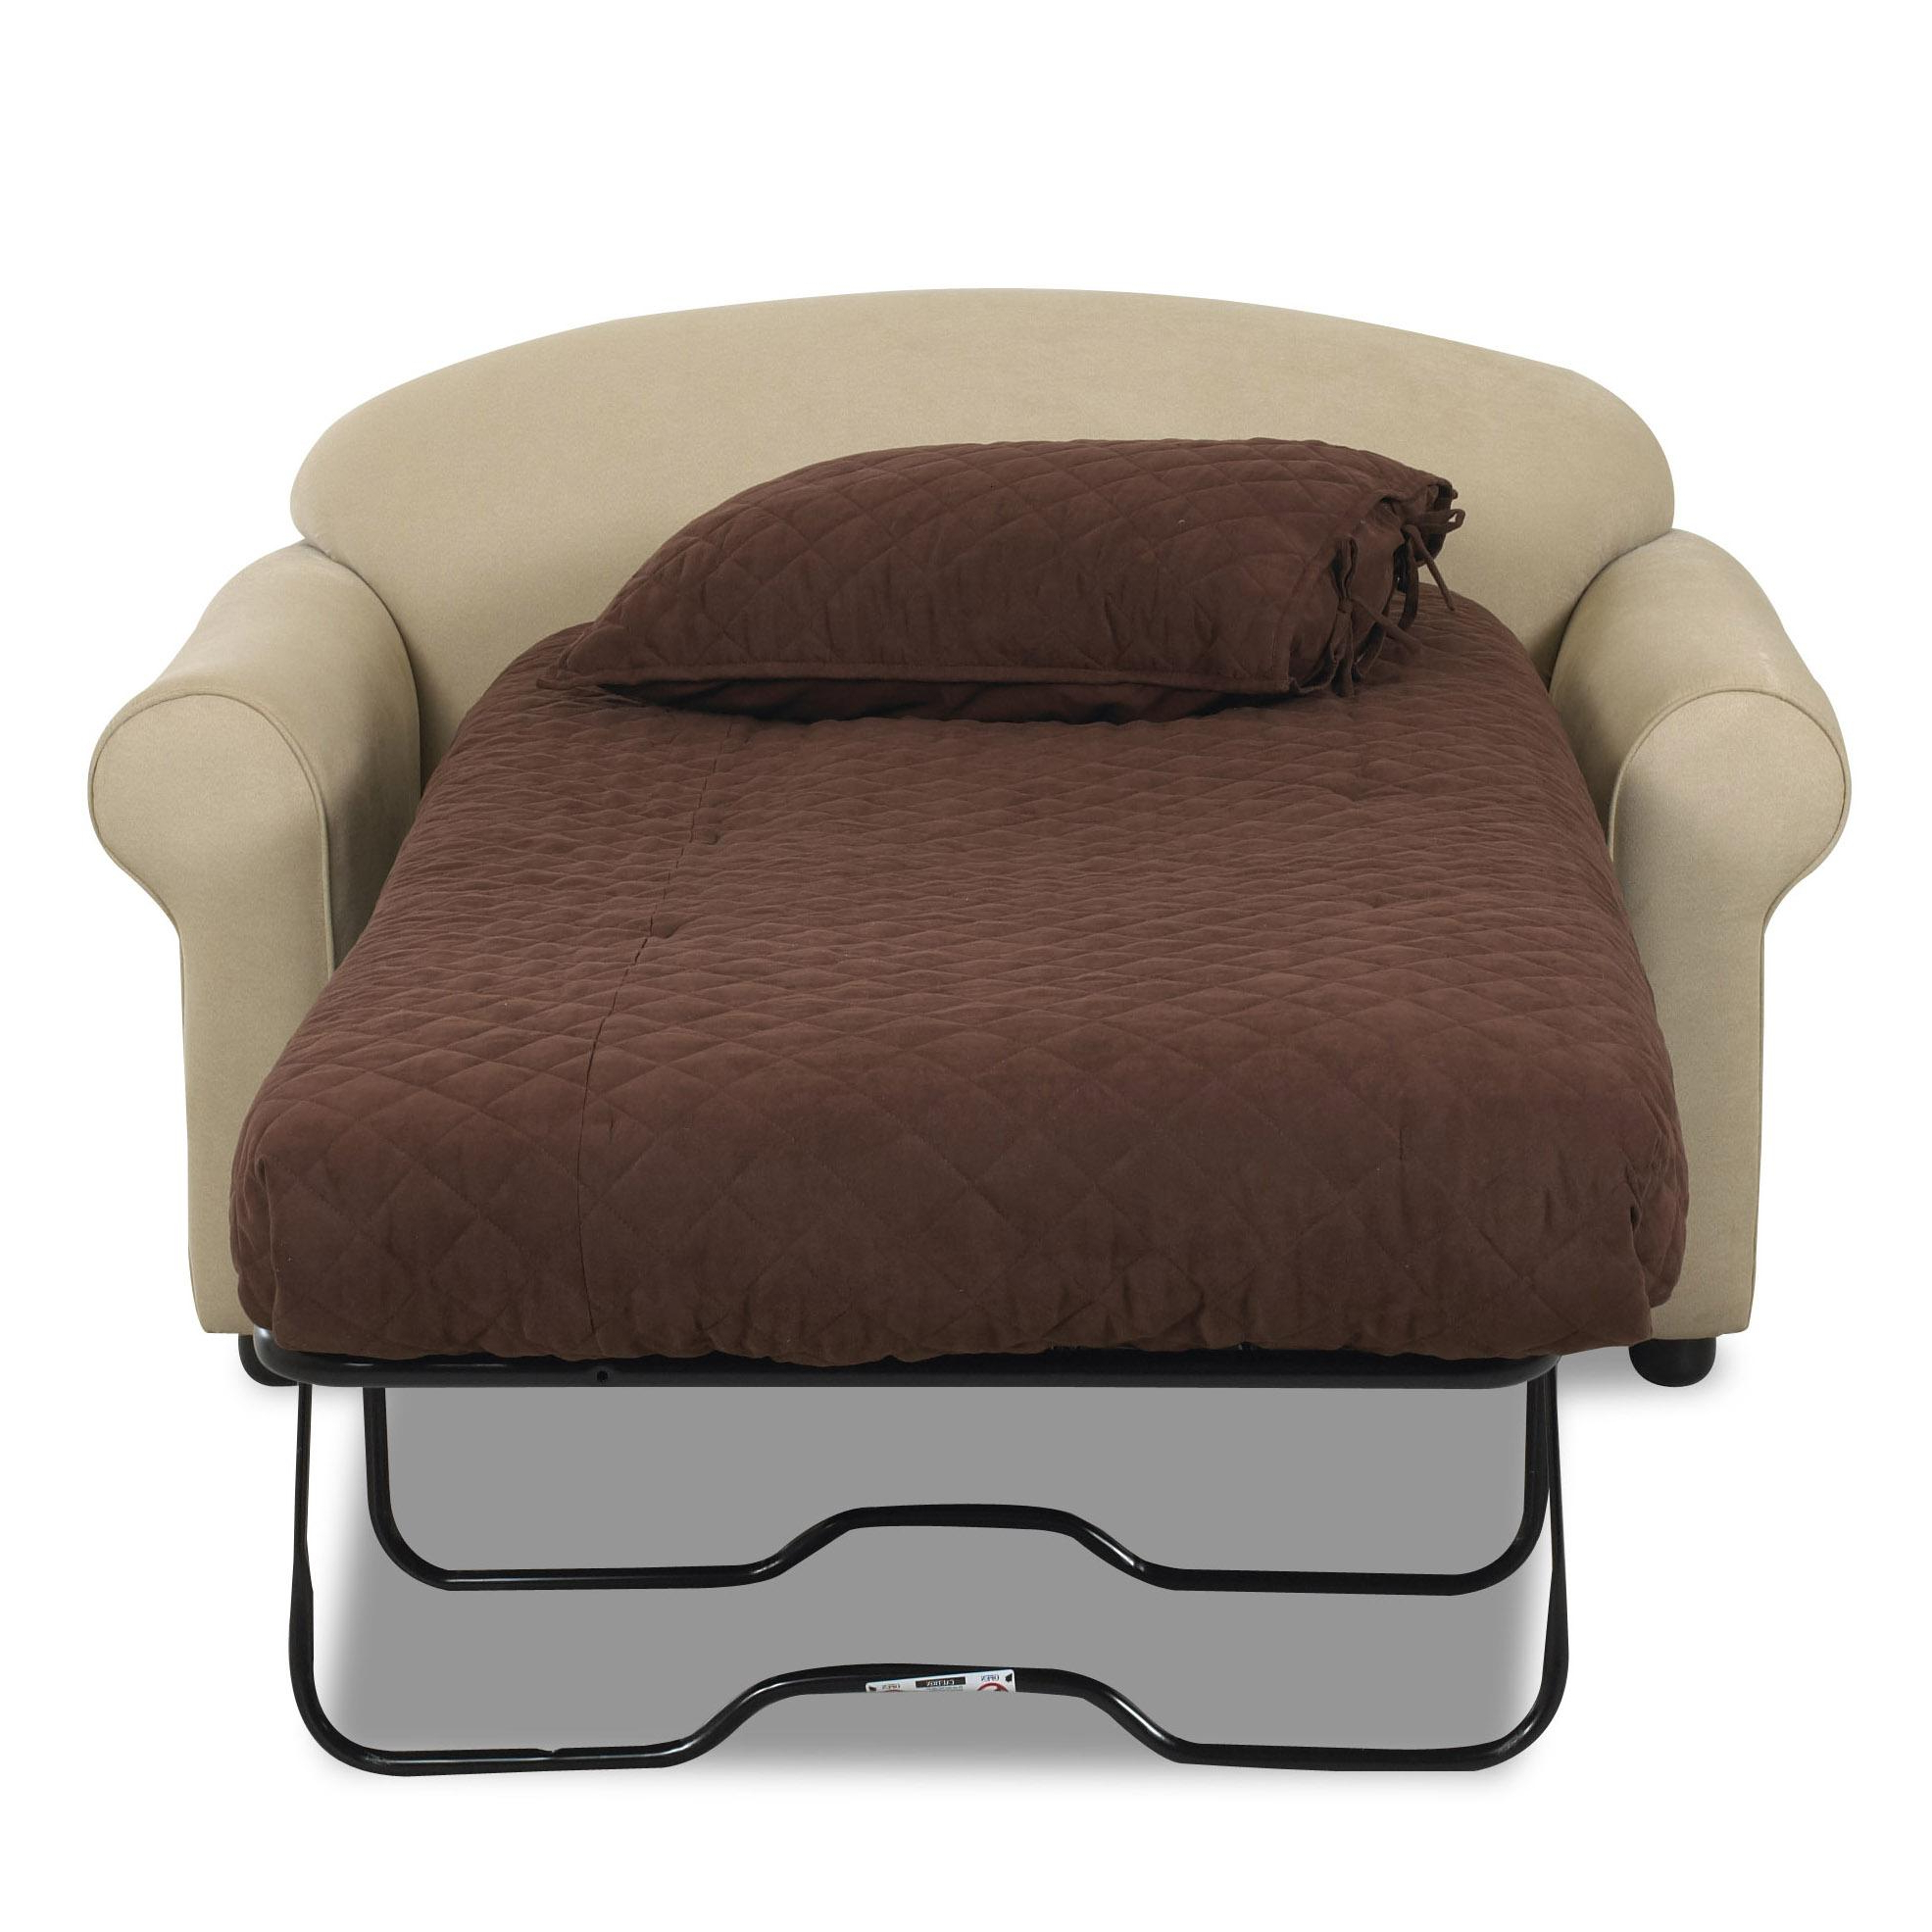 Popular Sofa Beds Chairs Intended For Klaussner Possibilities Innerspring Chair Sleeper (Gallery 7 of 20)